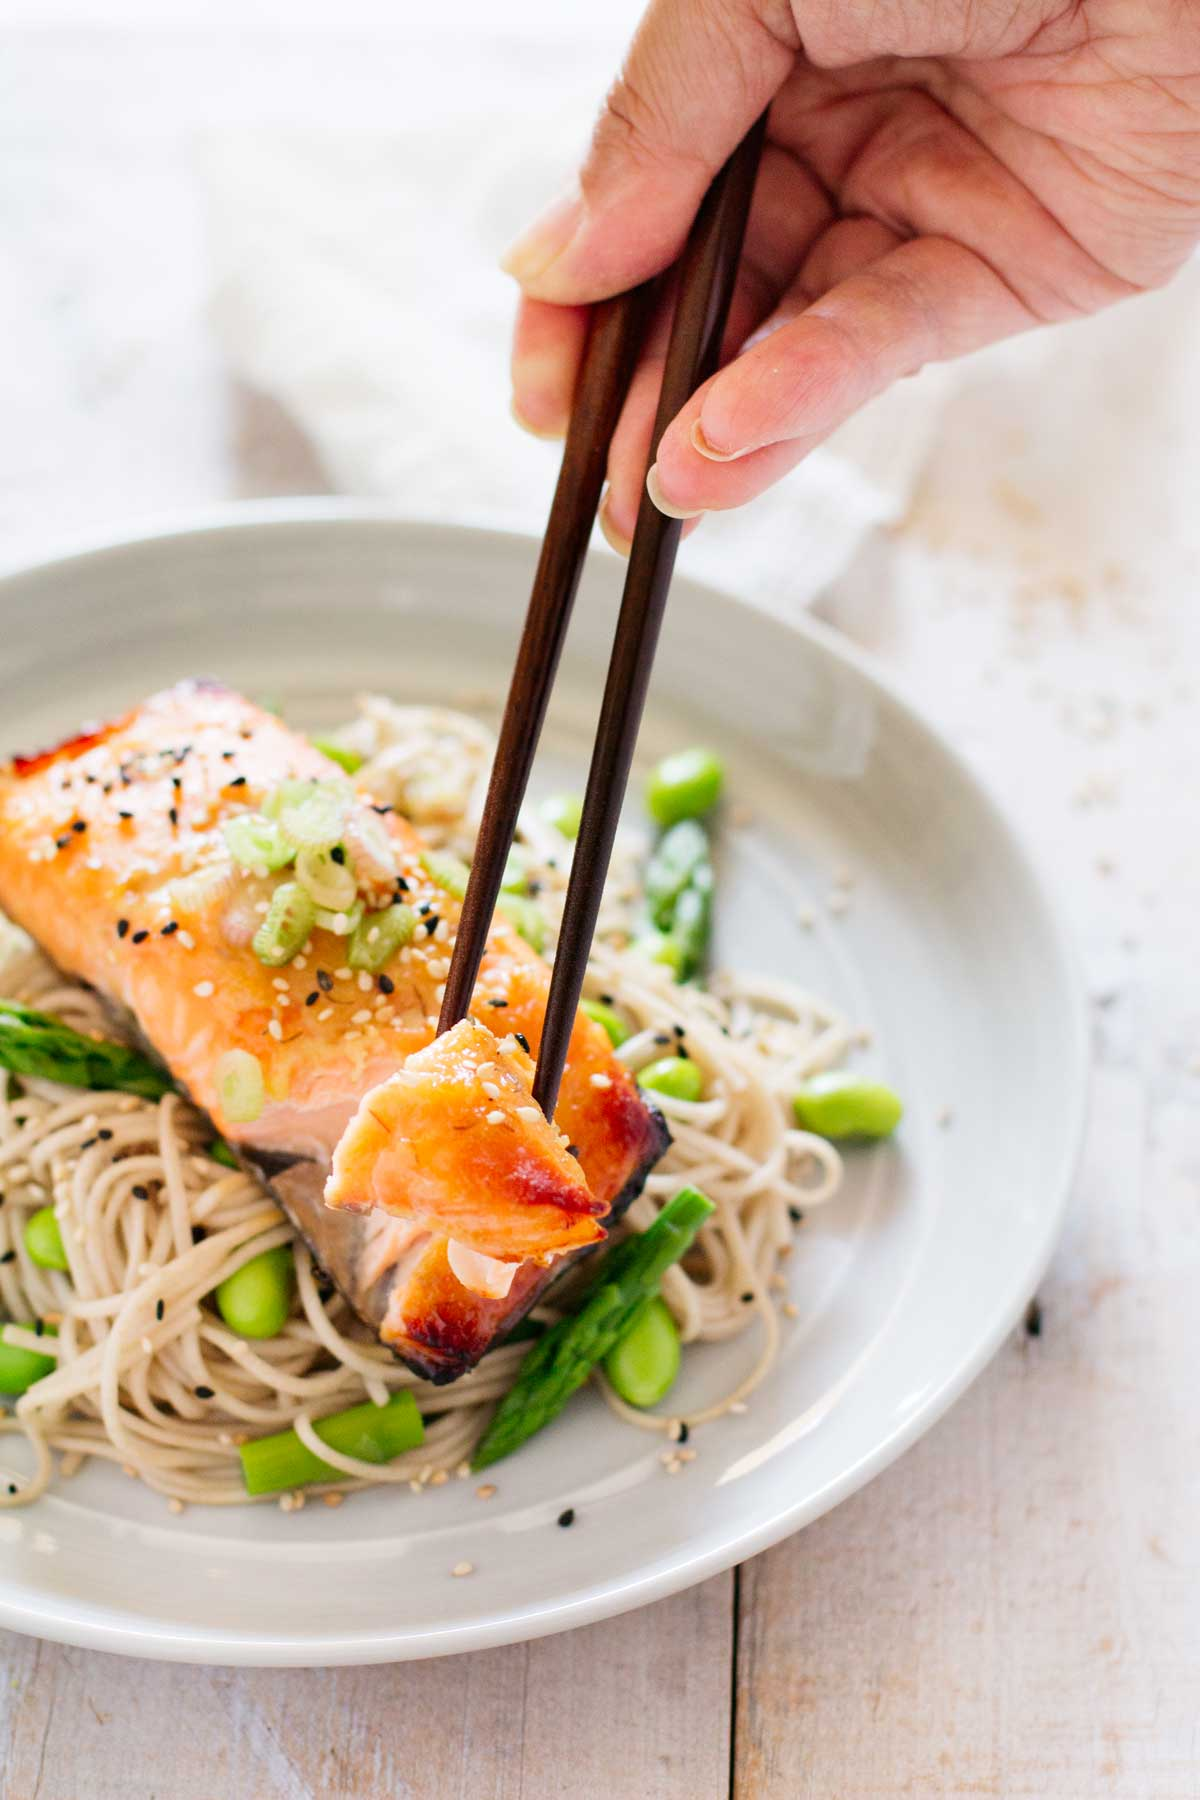 Ingredients In An Airtight Container Or A Ziplock Bag, Add The Salmon And  Marinate,